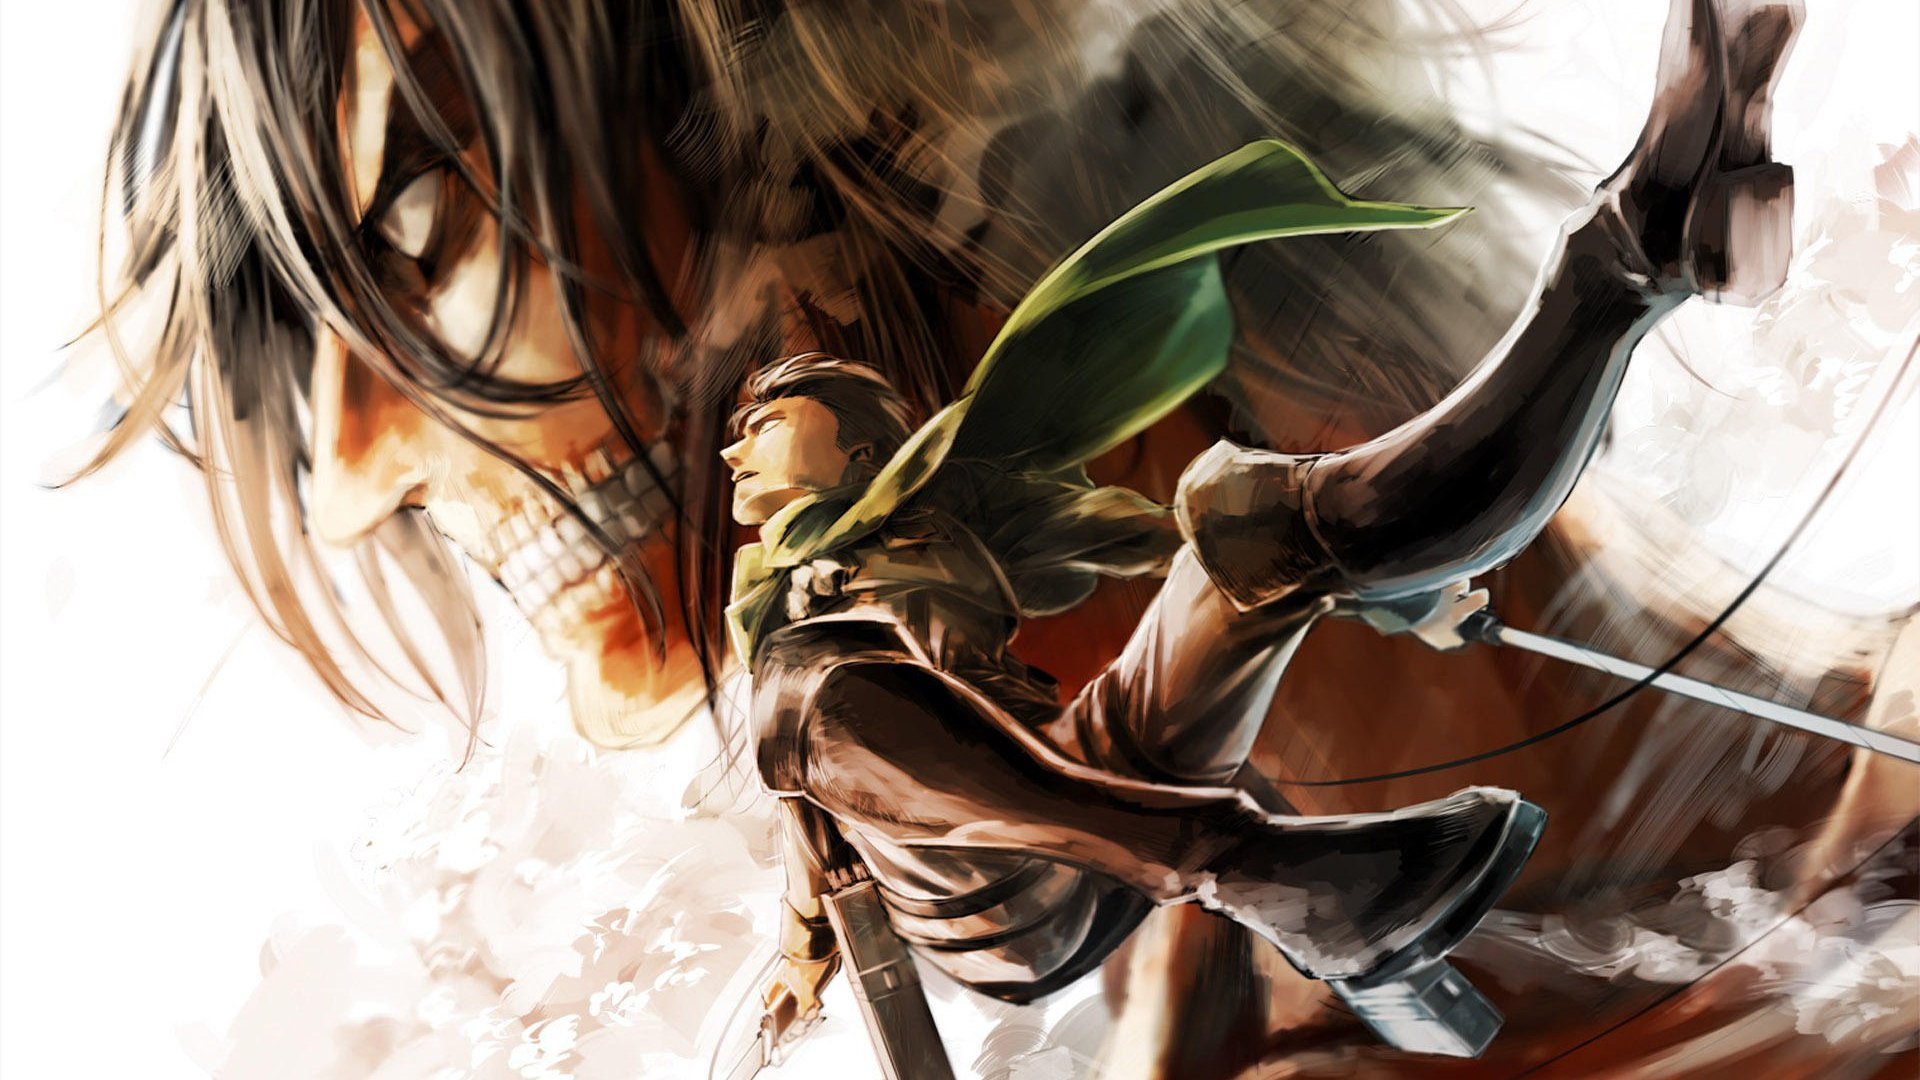 47 Attack On Titan Wallpaper 1920x1080 On Wallpapersafari